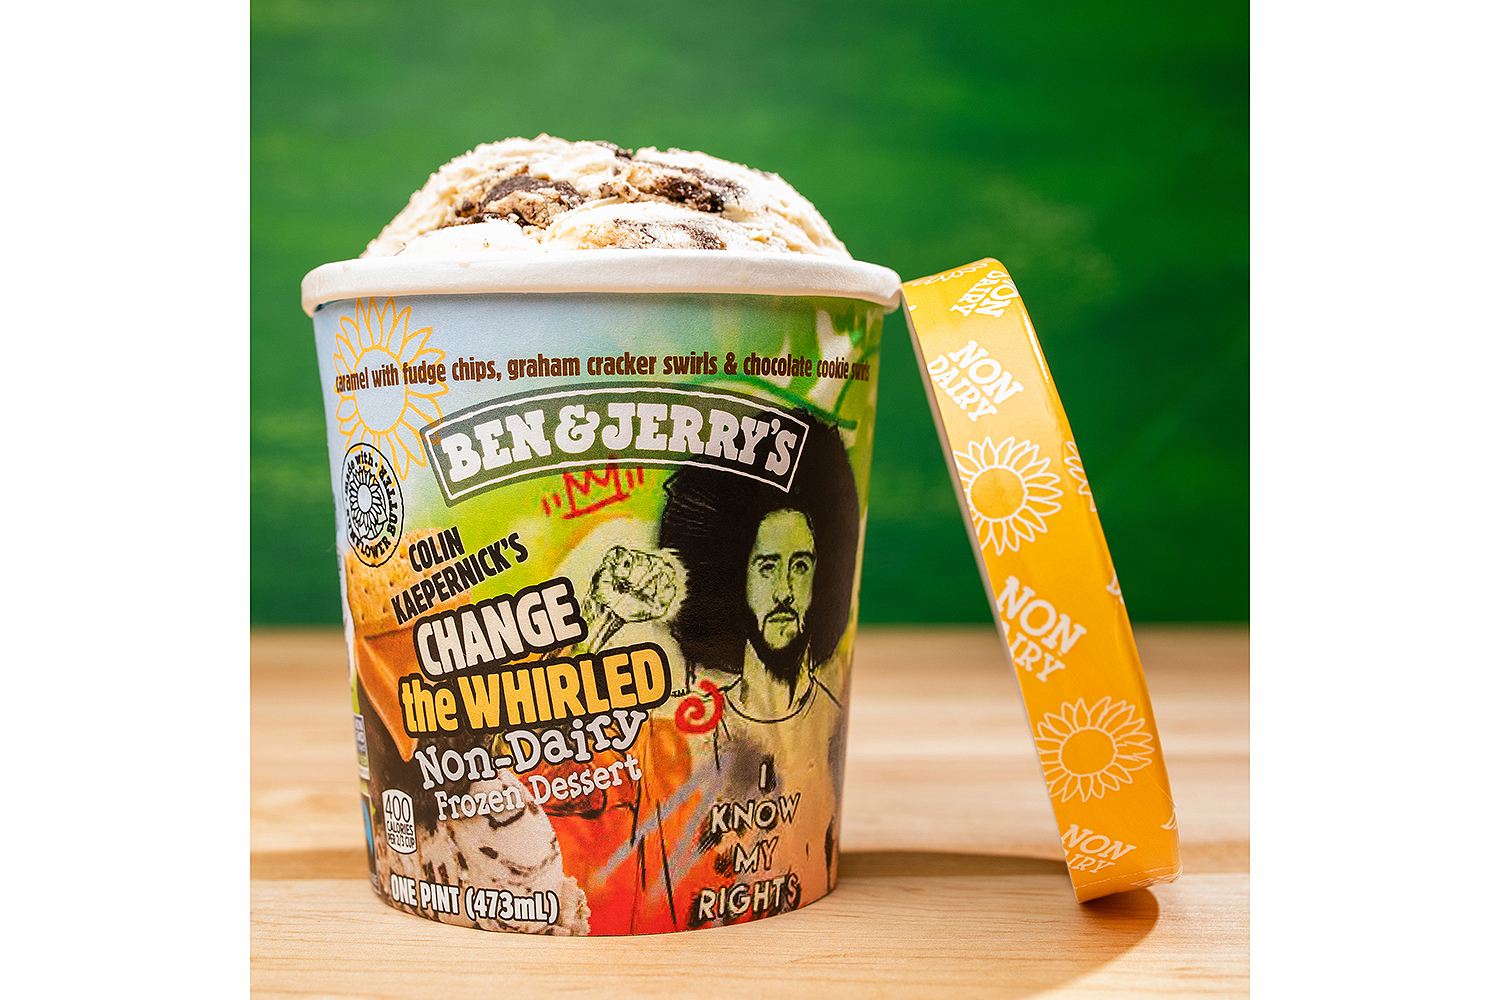 Ben & Jerry's x Colin Kaepernick Change the Whirled